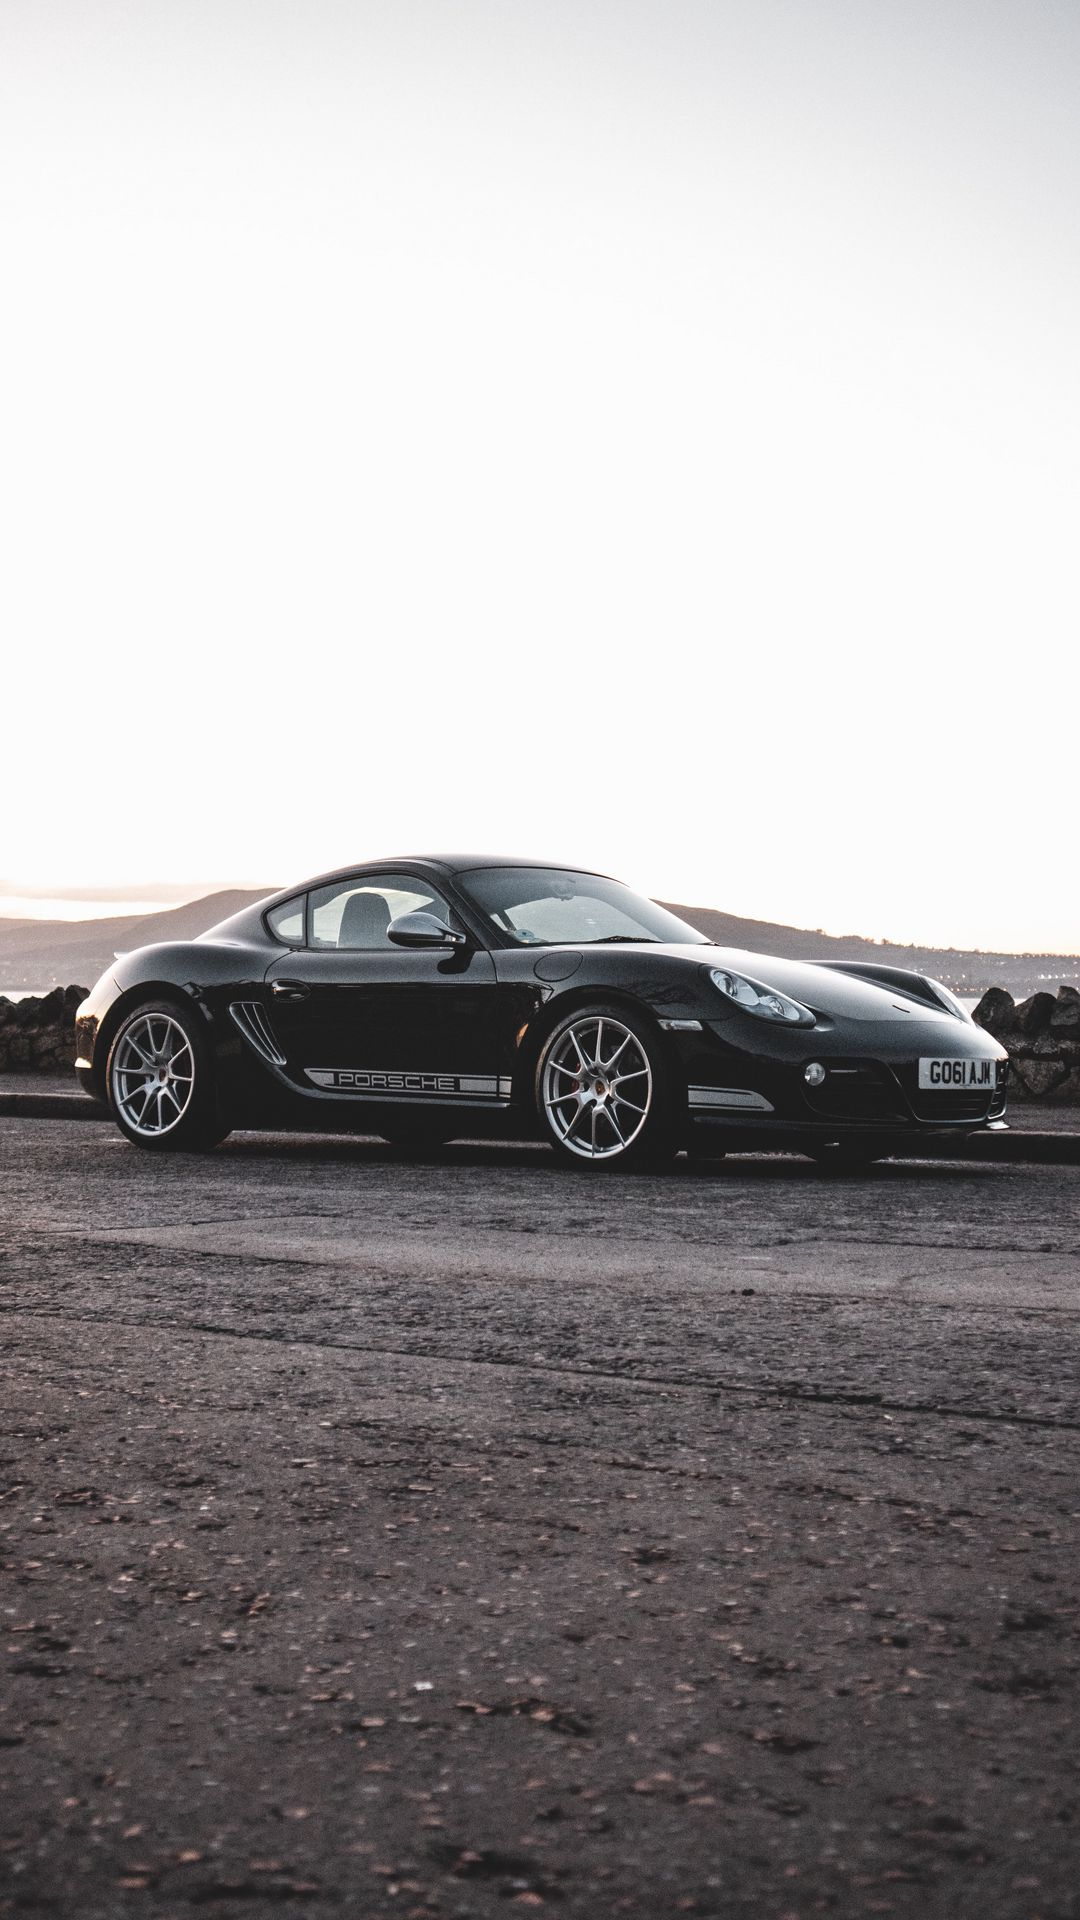 Porsche Cayman 987 Wallpapers Download for iOS Background